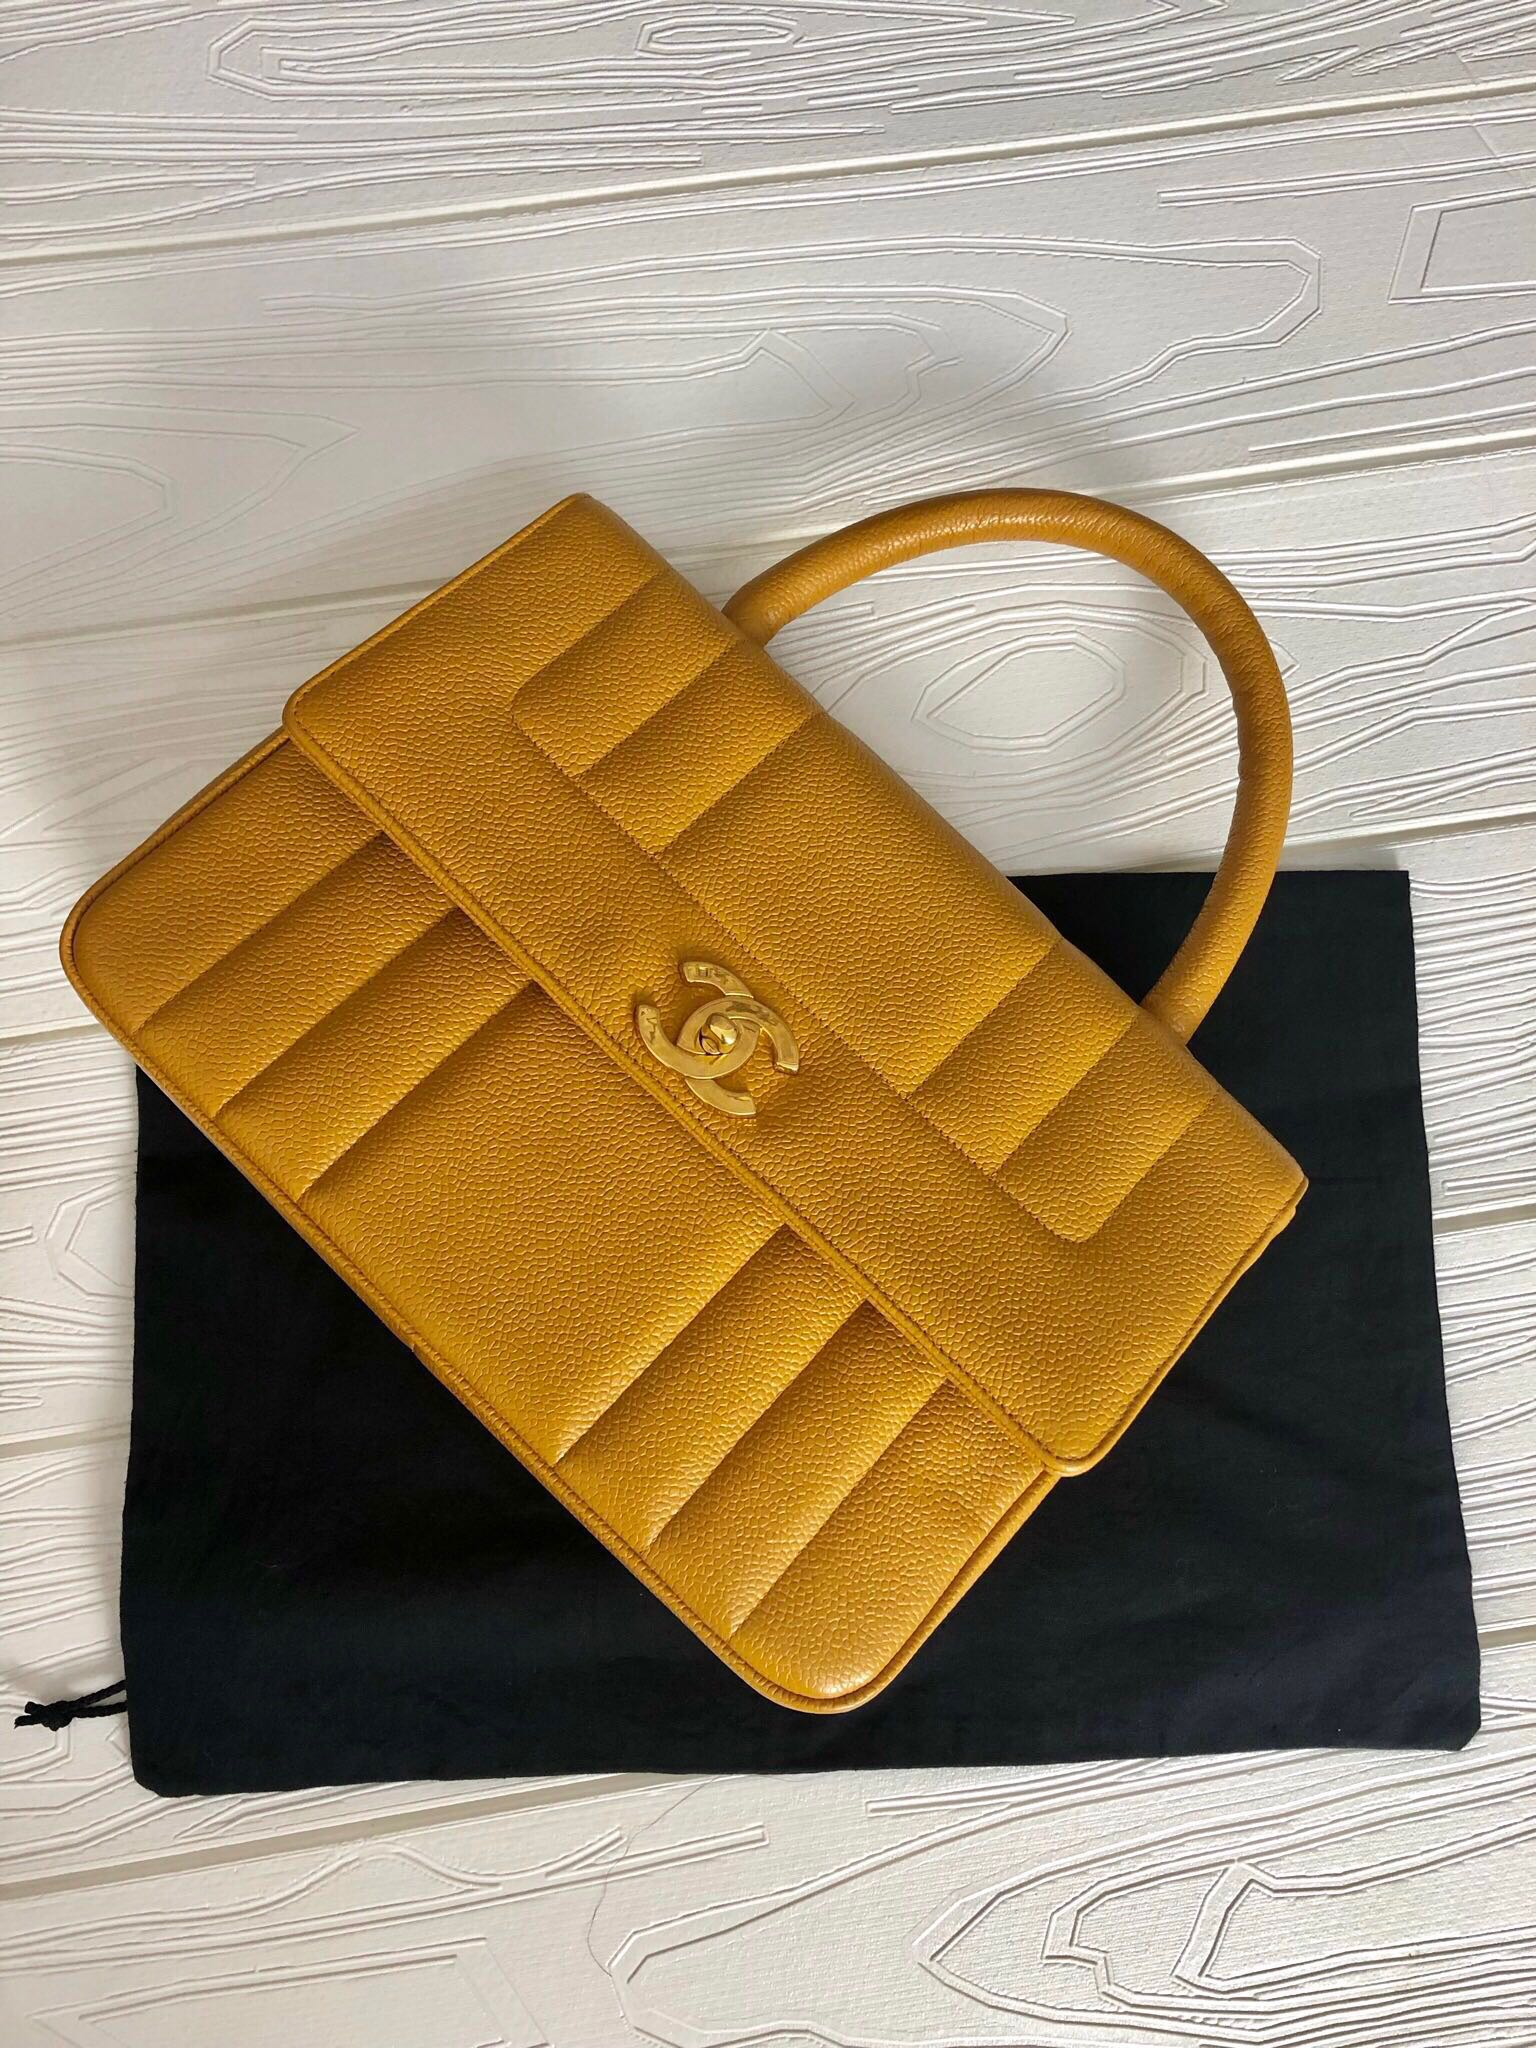 cd39afdf2e29 Authentic Chanel Kelly Caviar Medium, Luxury, Bags & Wallets ...